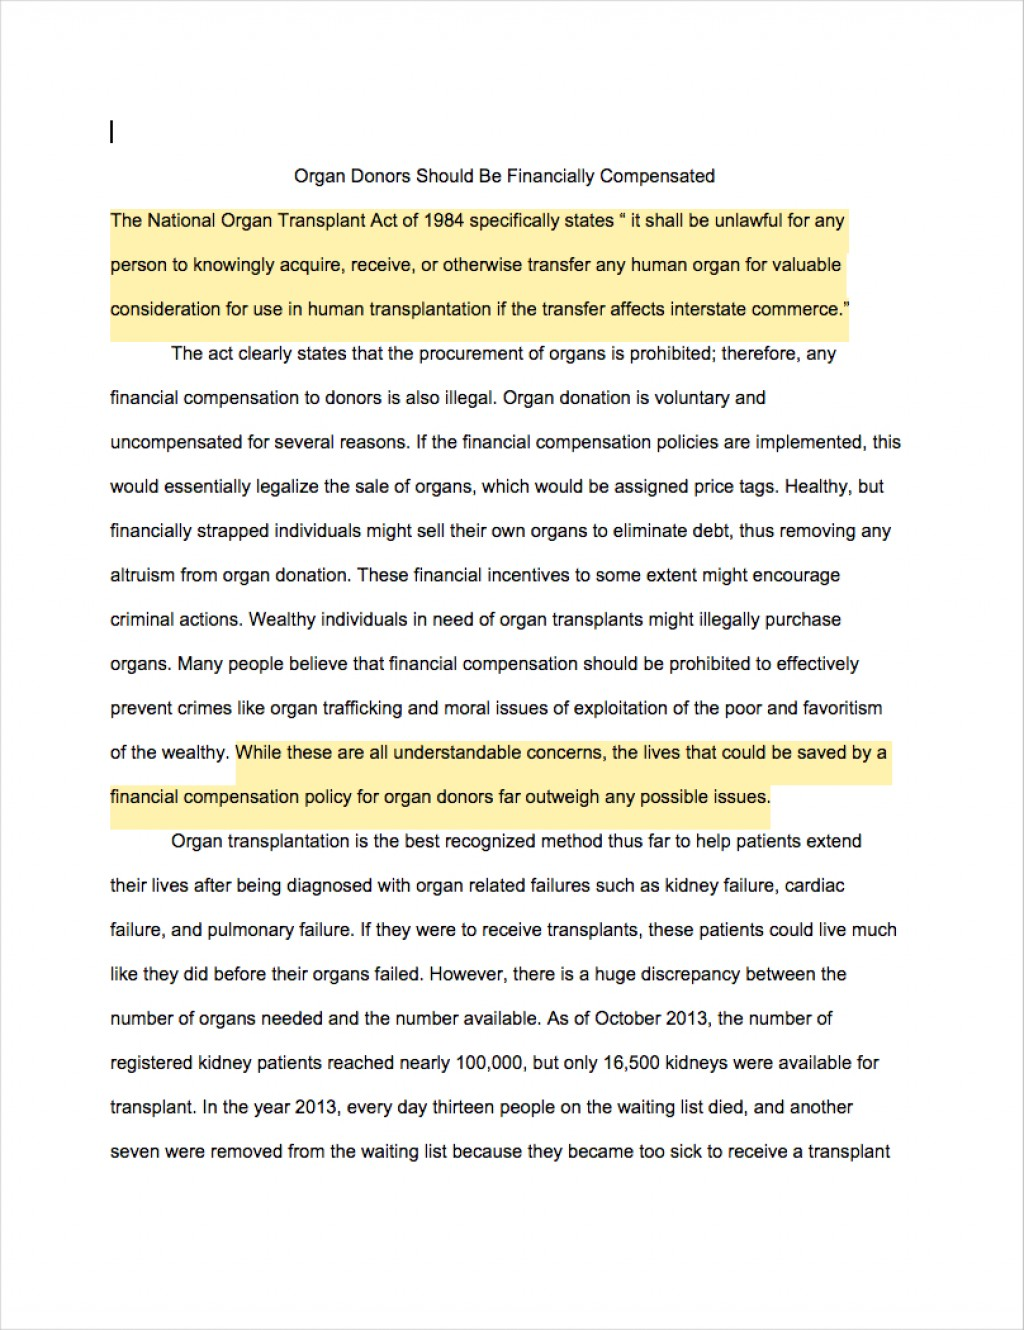 003 Argumentative Essays Organ Donors Should Financially Compensated1 Incredible Example Essay Ap Lang Rogerian Argument Topics Middle School Large